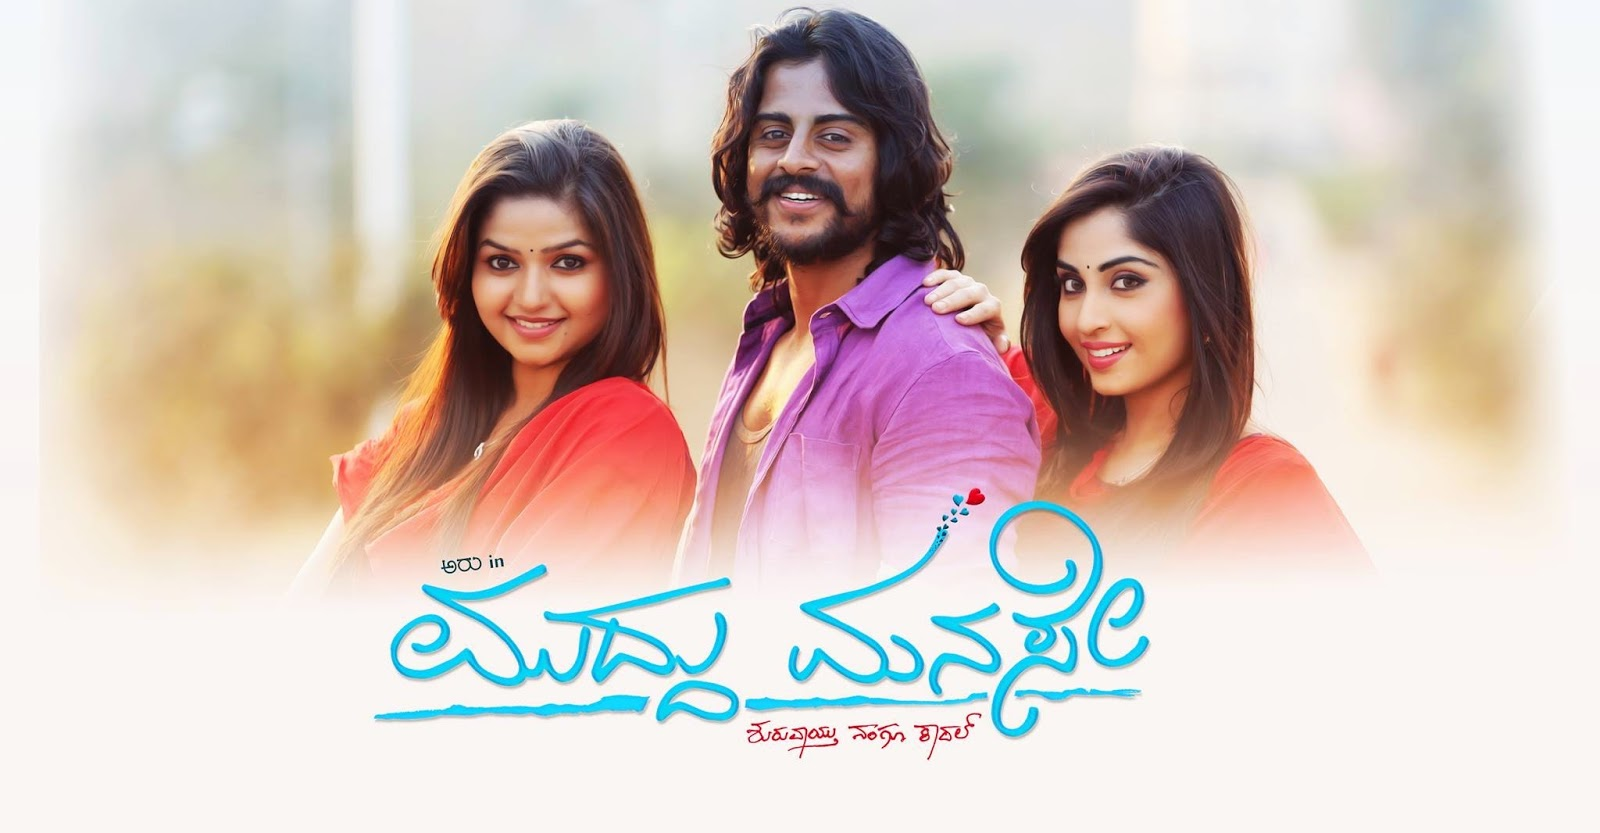 Muddu Manase 2014 Kannada Video Songs Download